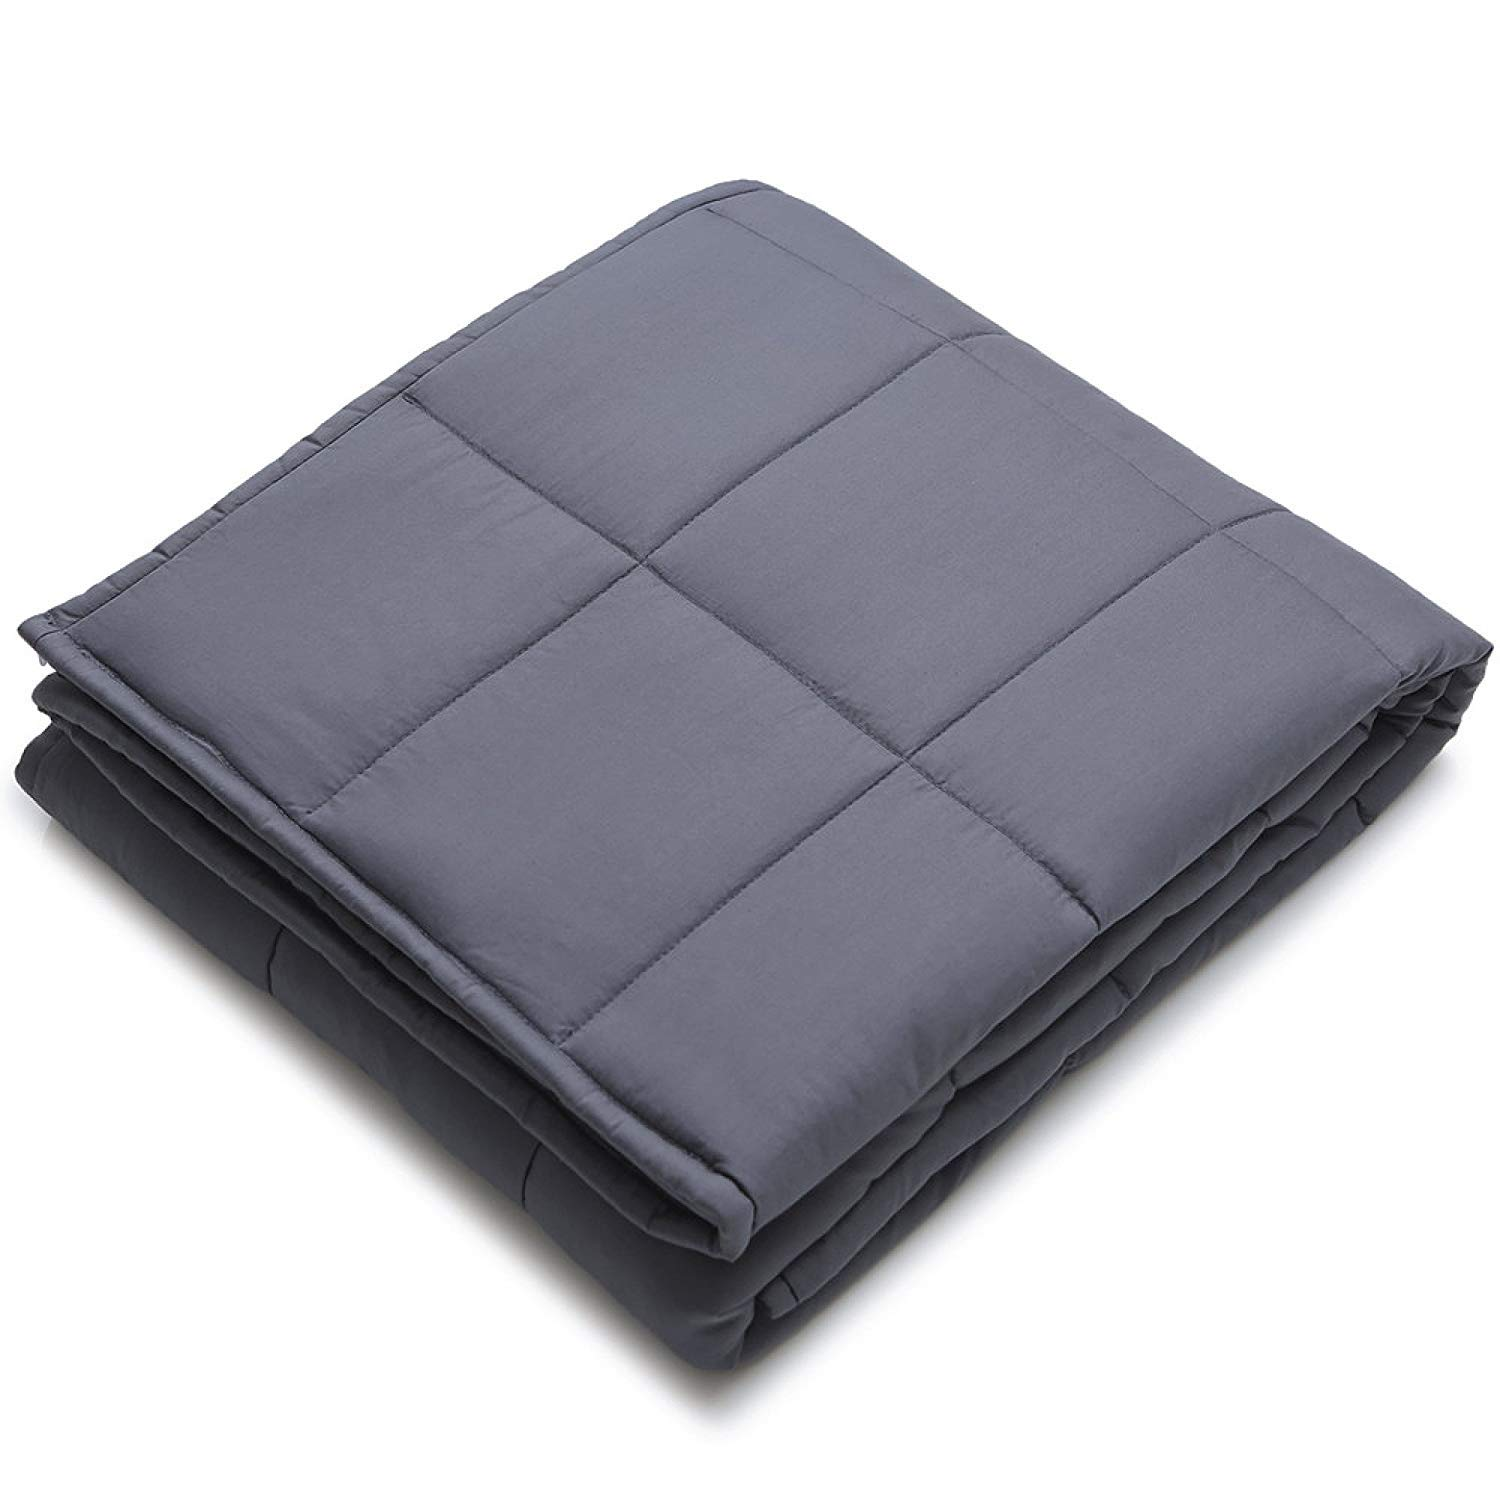 YnM Weighted Blanket (5 lbs for Kids, 36''x48'') | Gravity 2.0 Heavy Blanket | 100% Cotton Material with Glass Beads | Great Sleep Therapy for People with Anxiety, Autism, ADHD, Insomnia or Stress B073439DSG